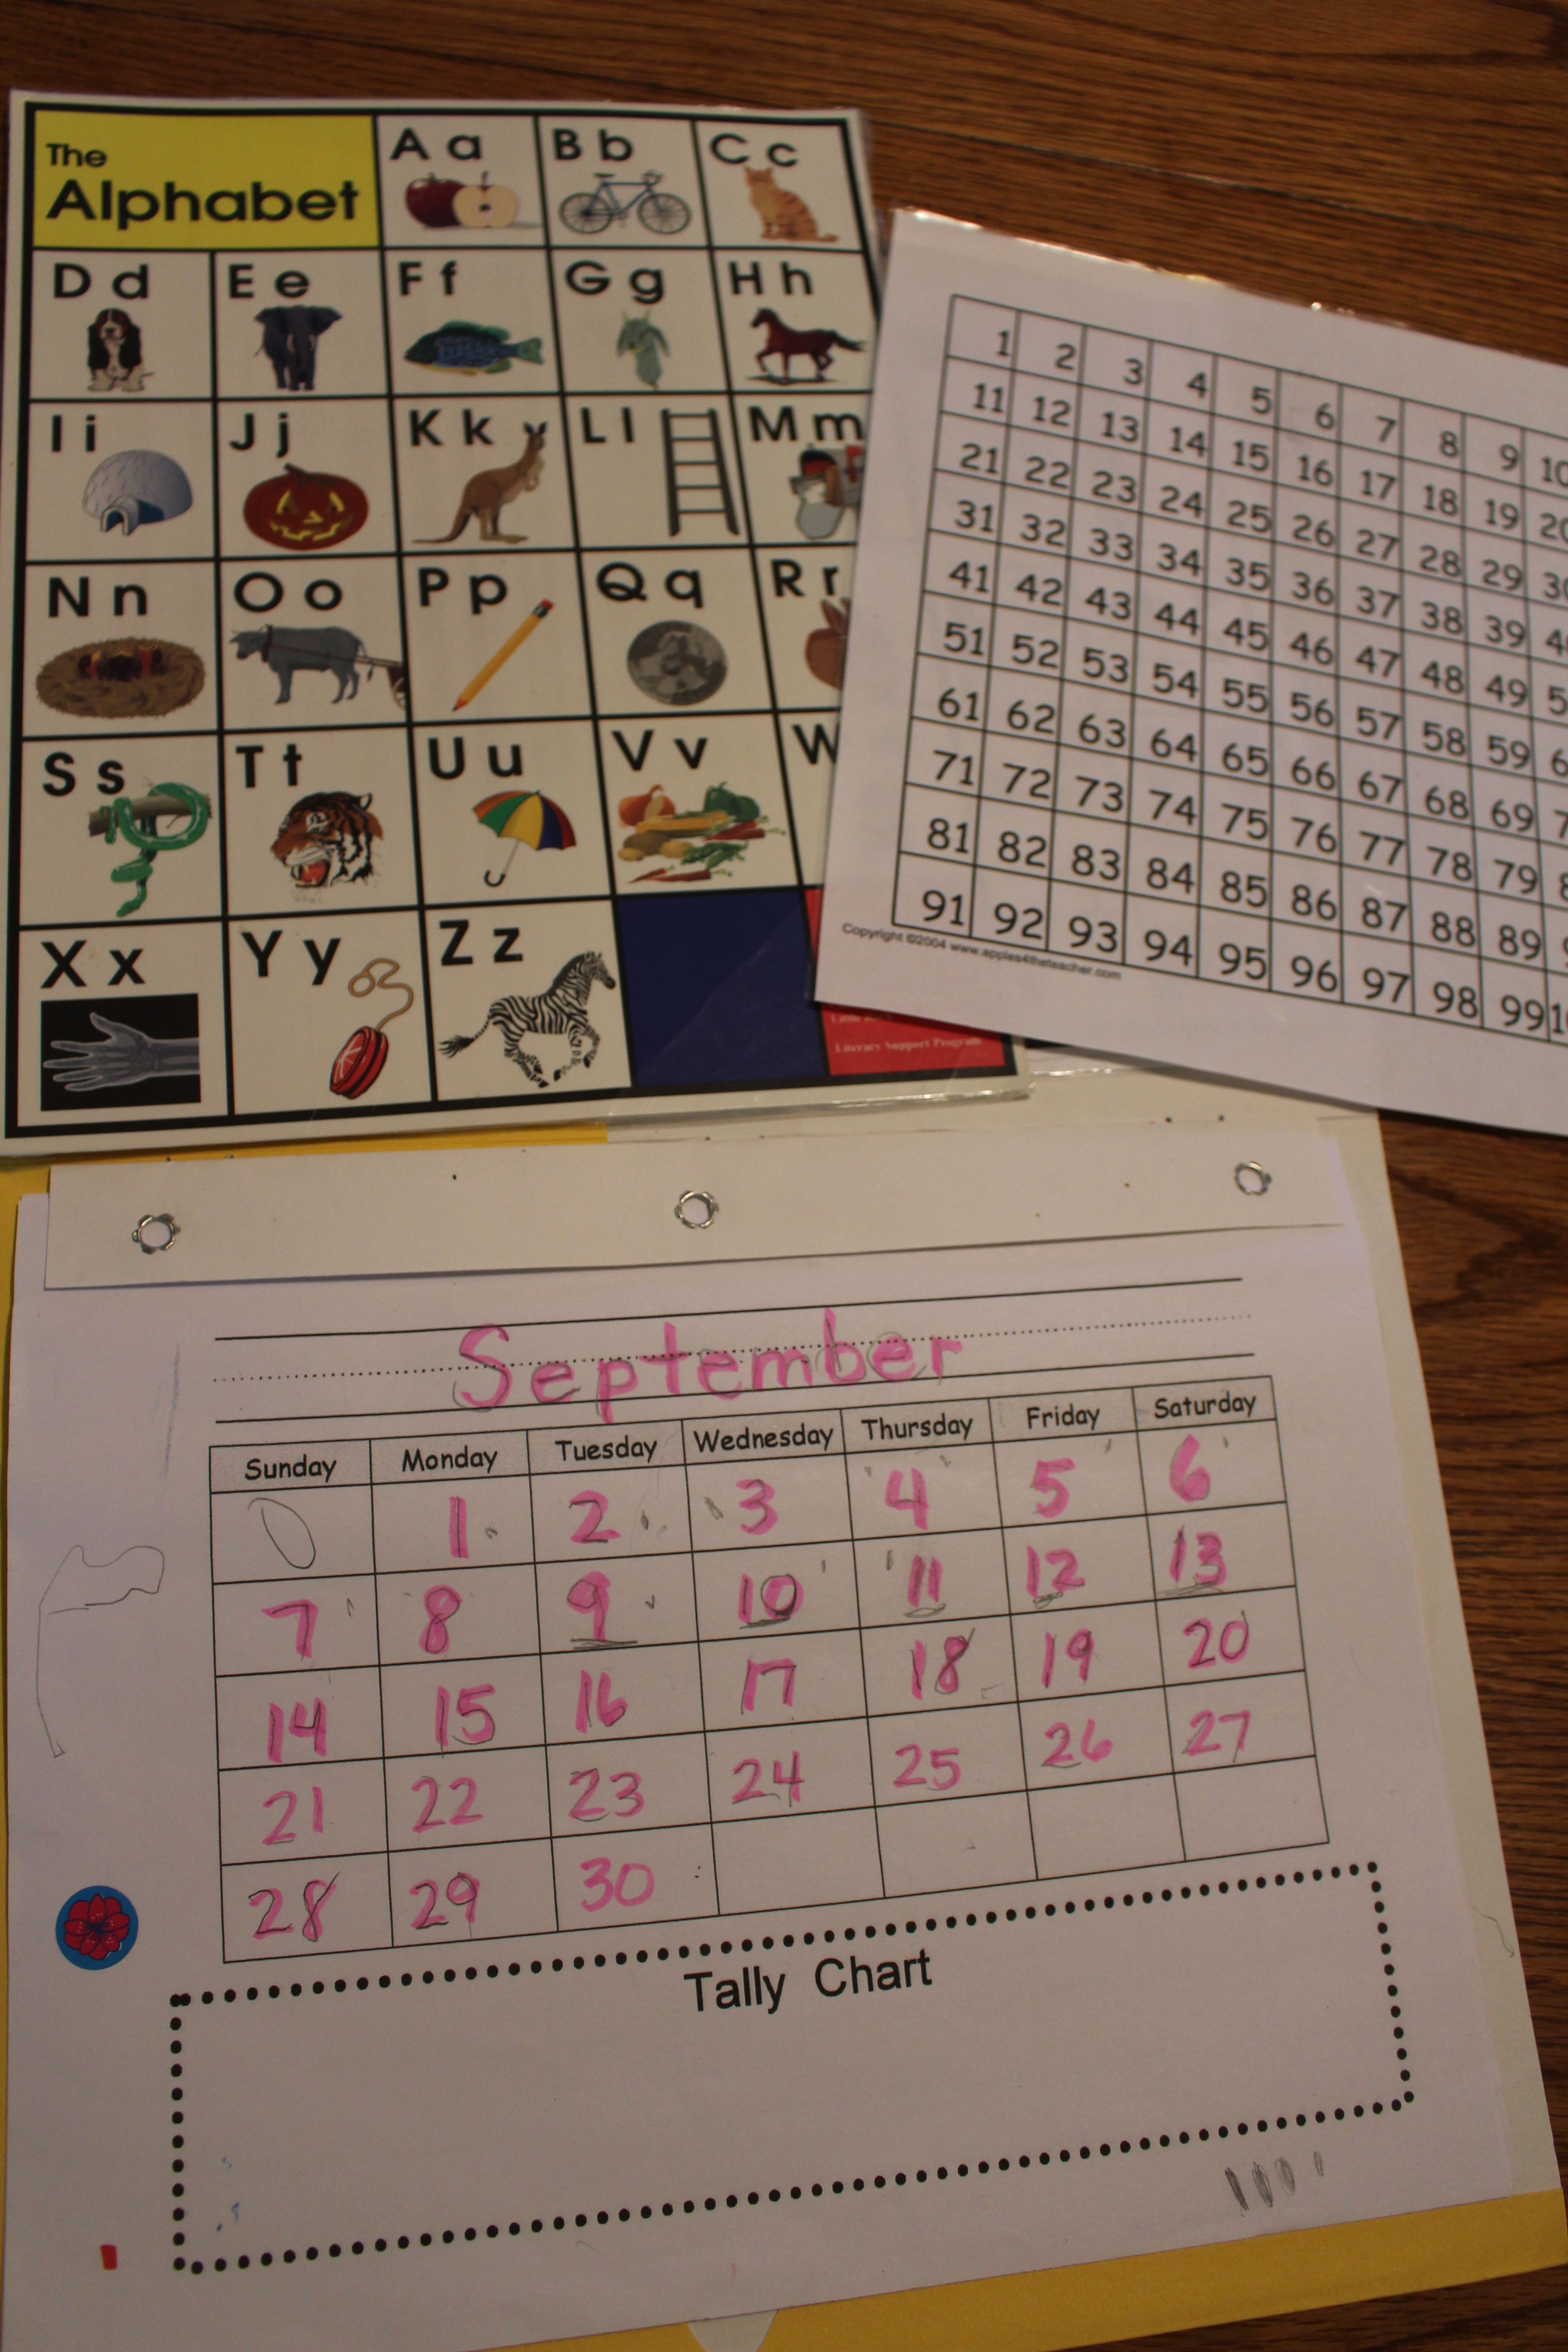 We  word chart chart books and the hubbard's alphabet use hundred Model sight Arkansas Literacy   a cupboard